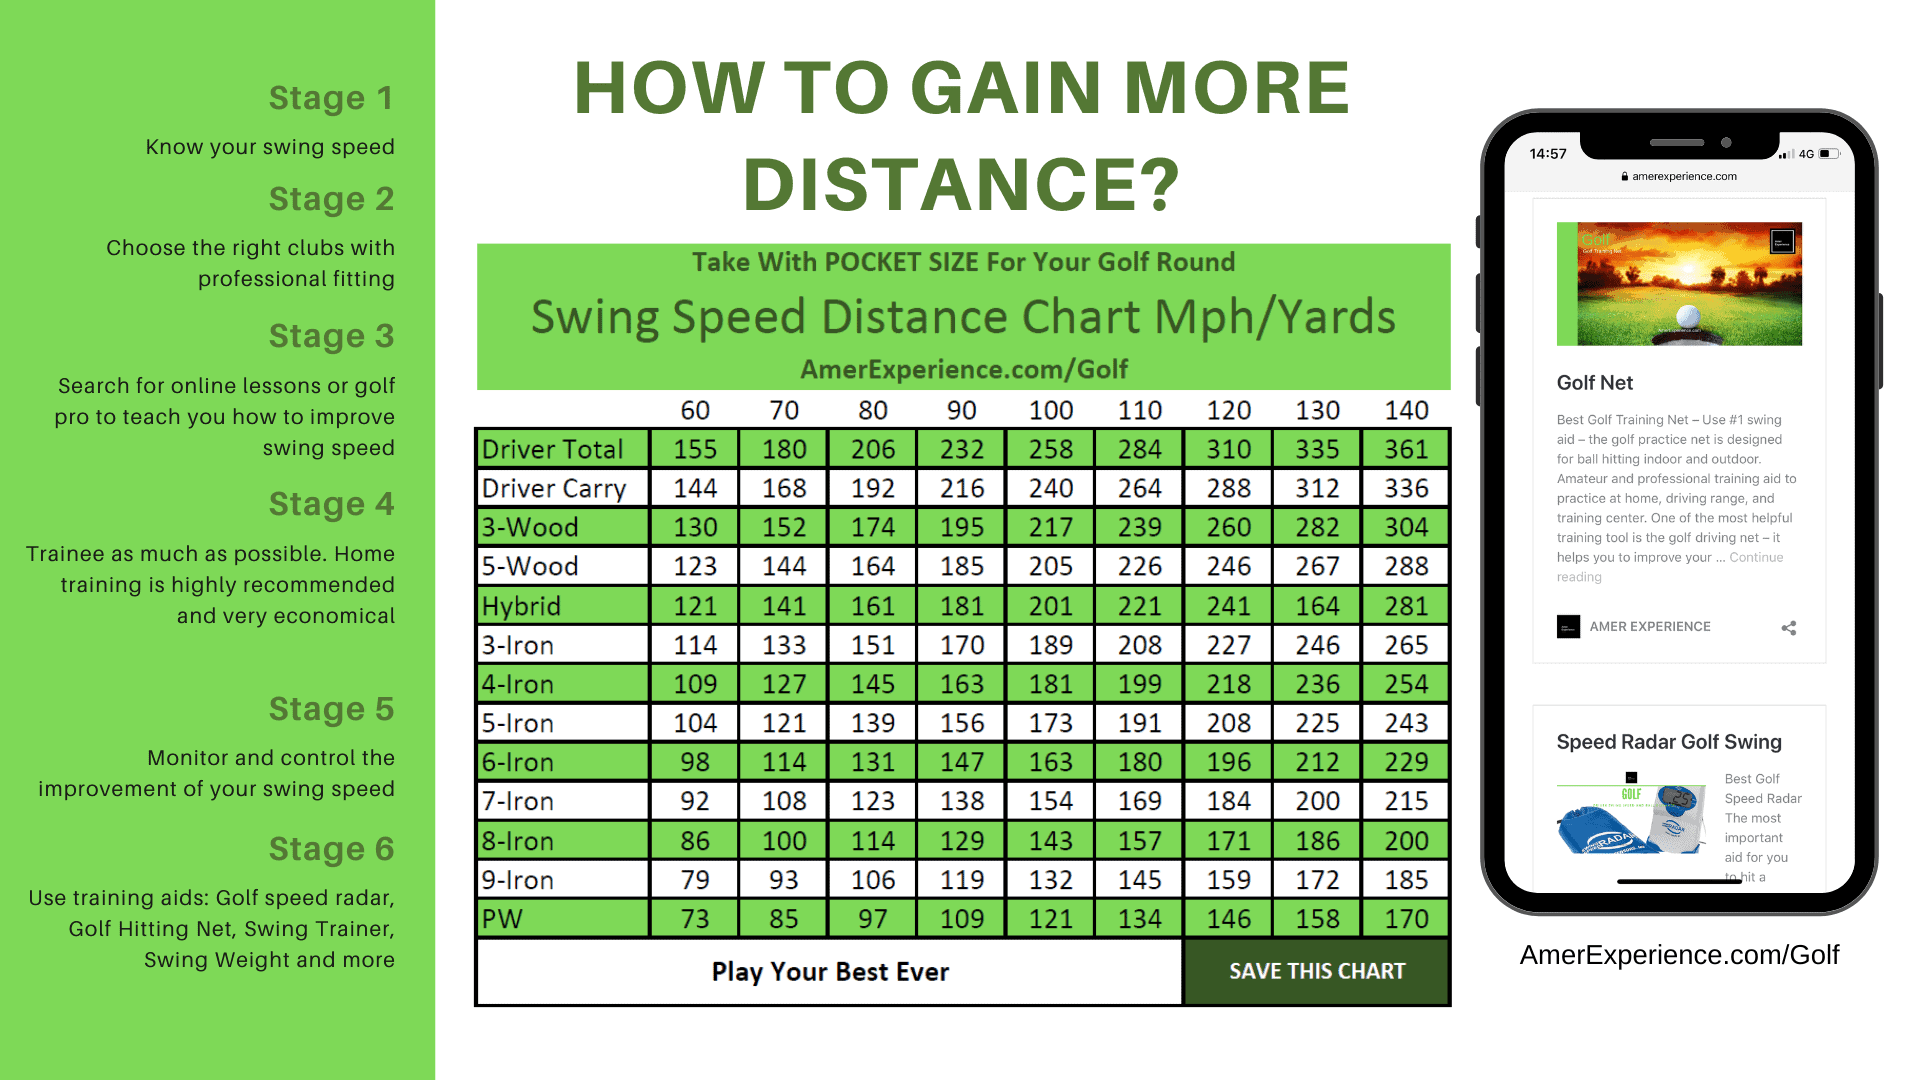 Golf Swing Speed Chart Mph/Yards - Use Golf Speed Radar, Golf Practice Mat And Swing Aid To Achieve Better Results In Swing Speed, Use with Golf Speed Radar and Swing Aids Best golf practice net for indoor and outdoor, golf training net and mat, best golf hitting net for backyard